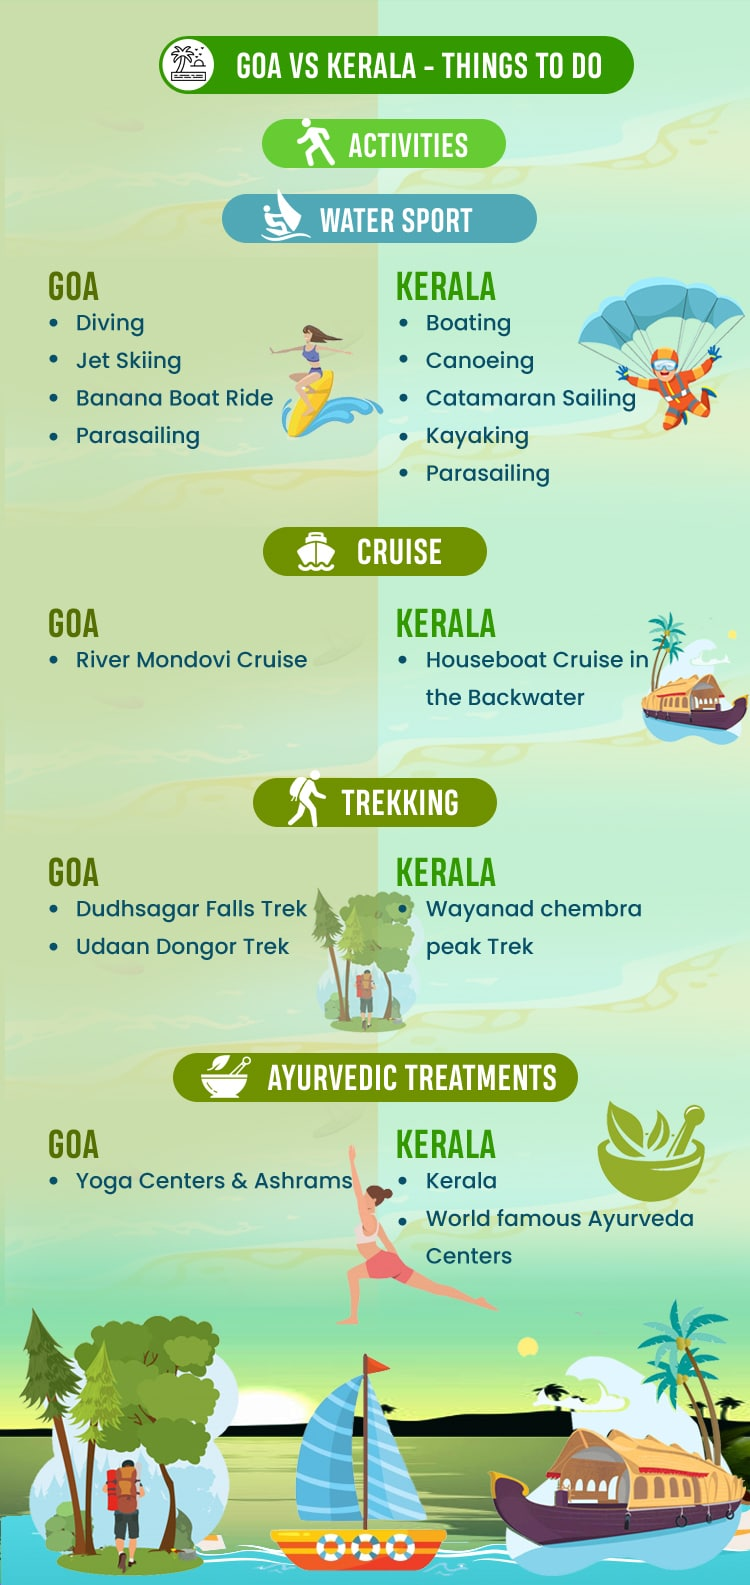 goa-vs-kerala-things-to-do